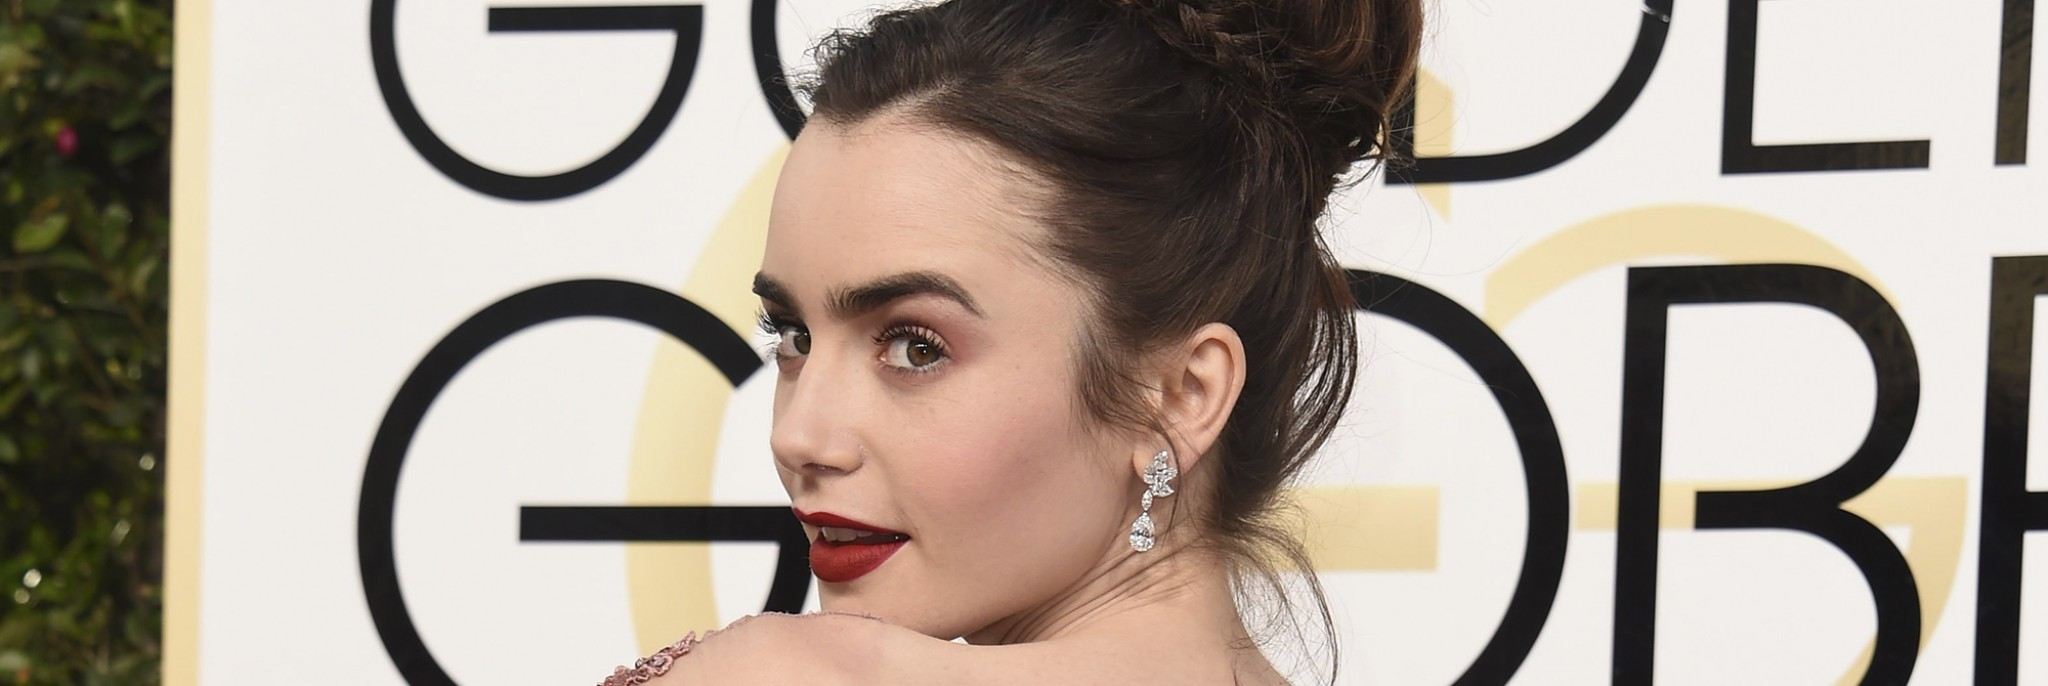 The Best Beauty Looks from the Golden Globes — Vote for Your Favorite